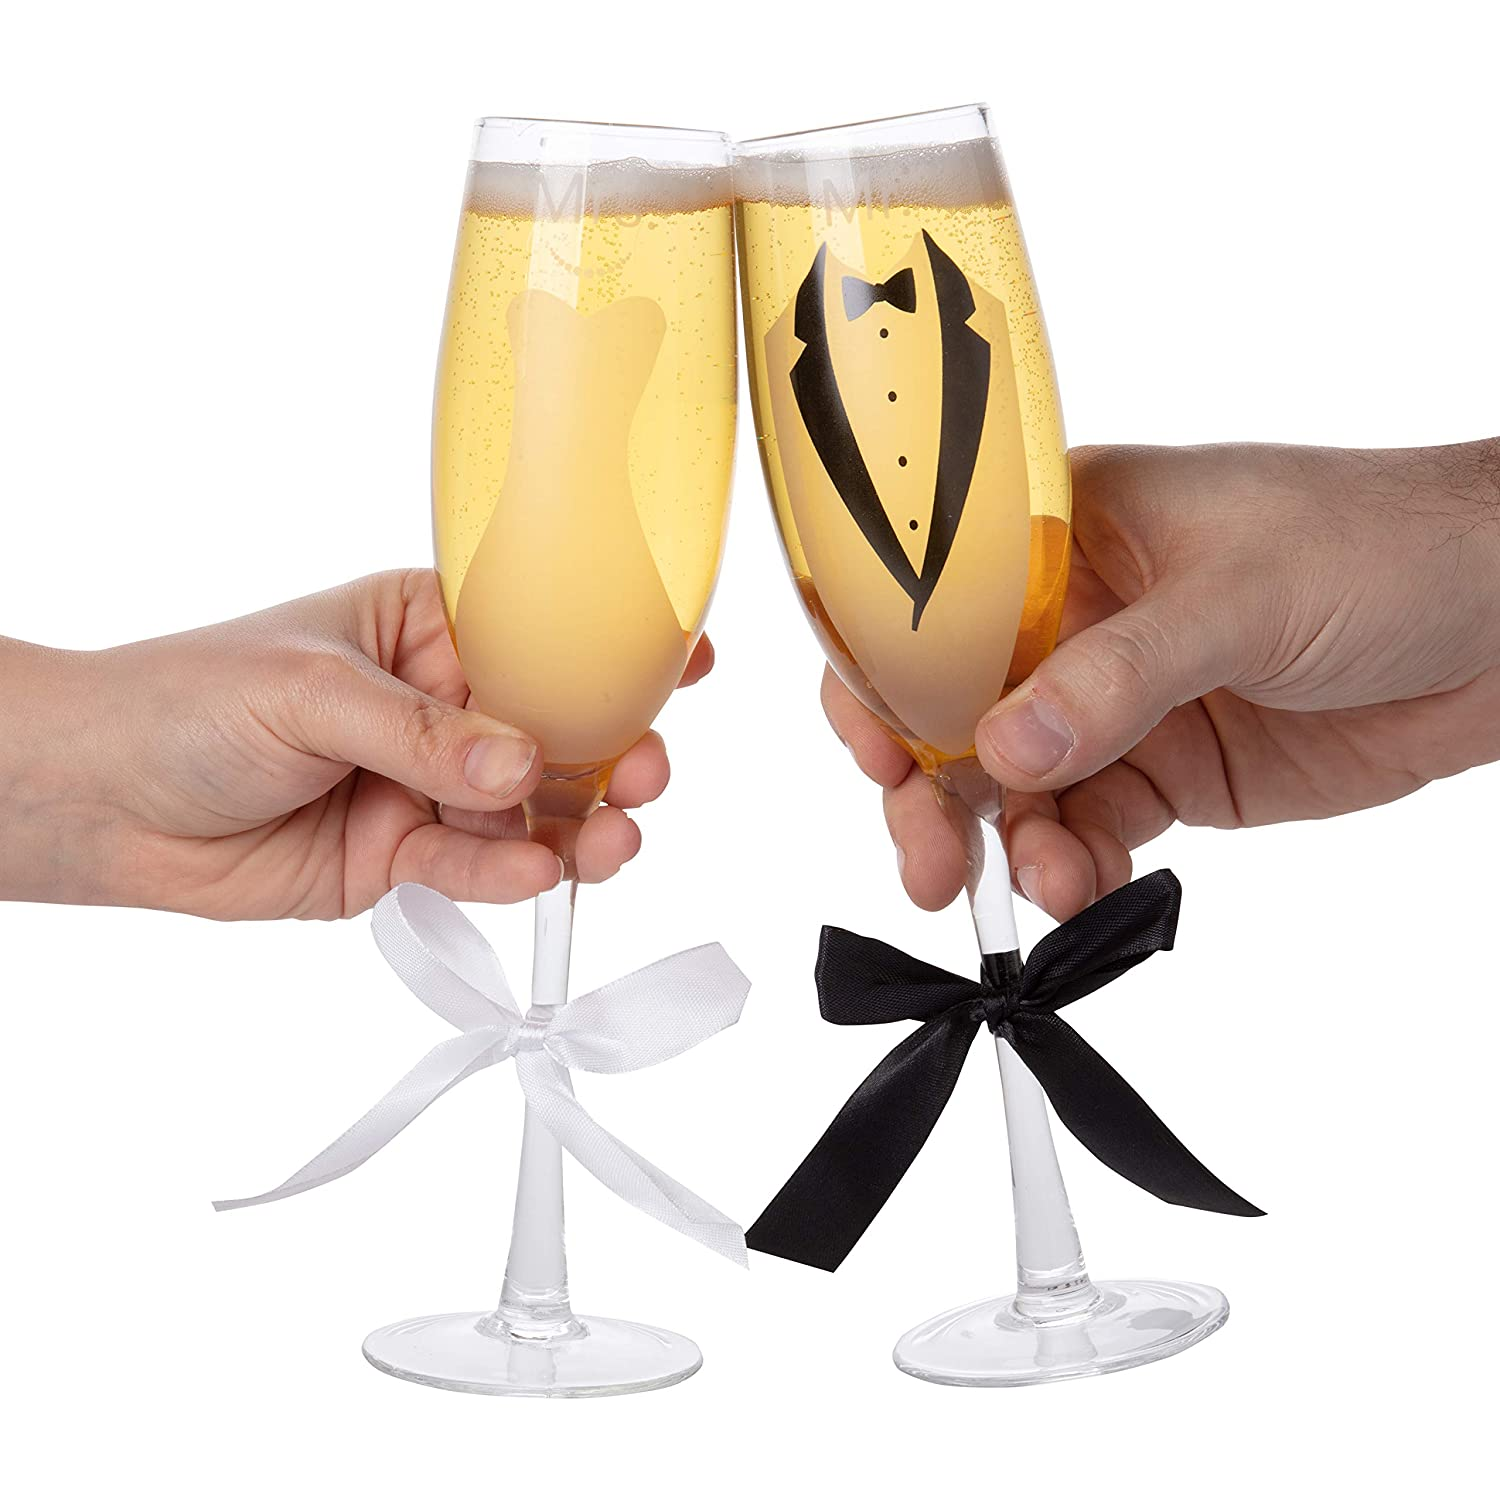 Bridal Gown and Tuxedo Design With Ribbons 70 Oz Pair Bride /& Groom Wedding Champagne Flutes